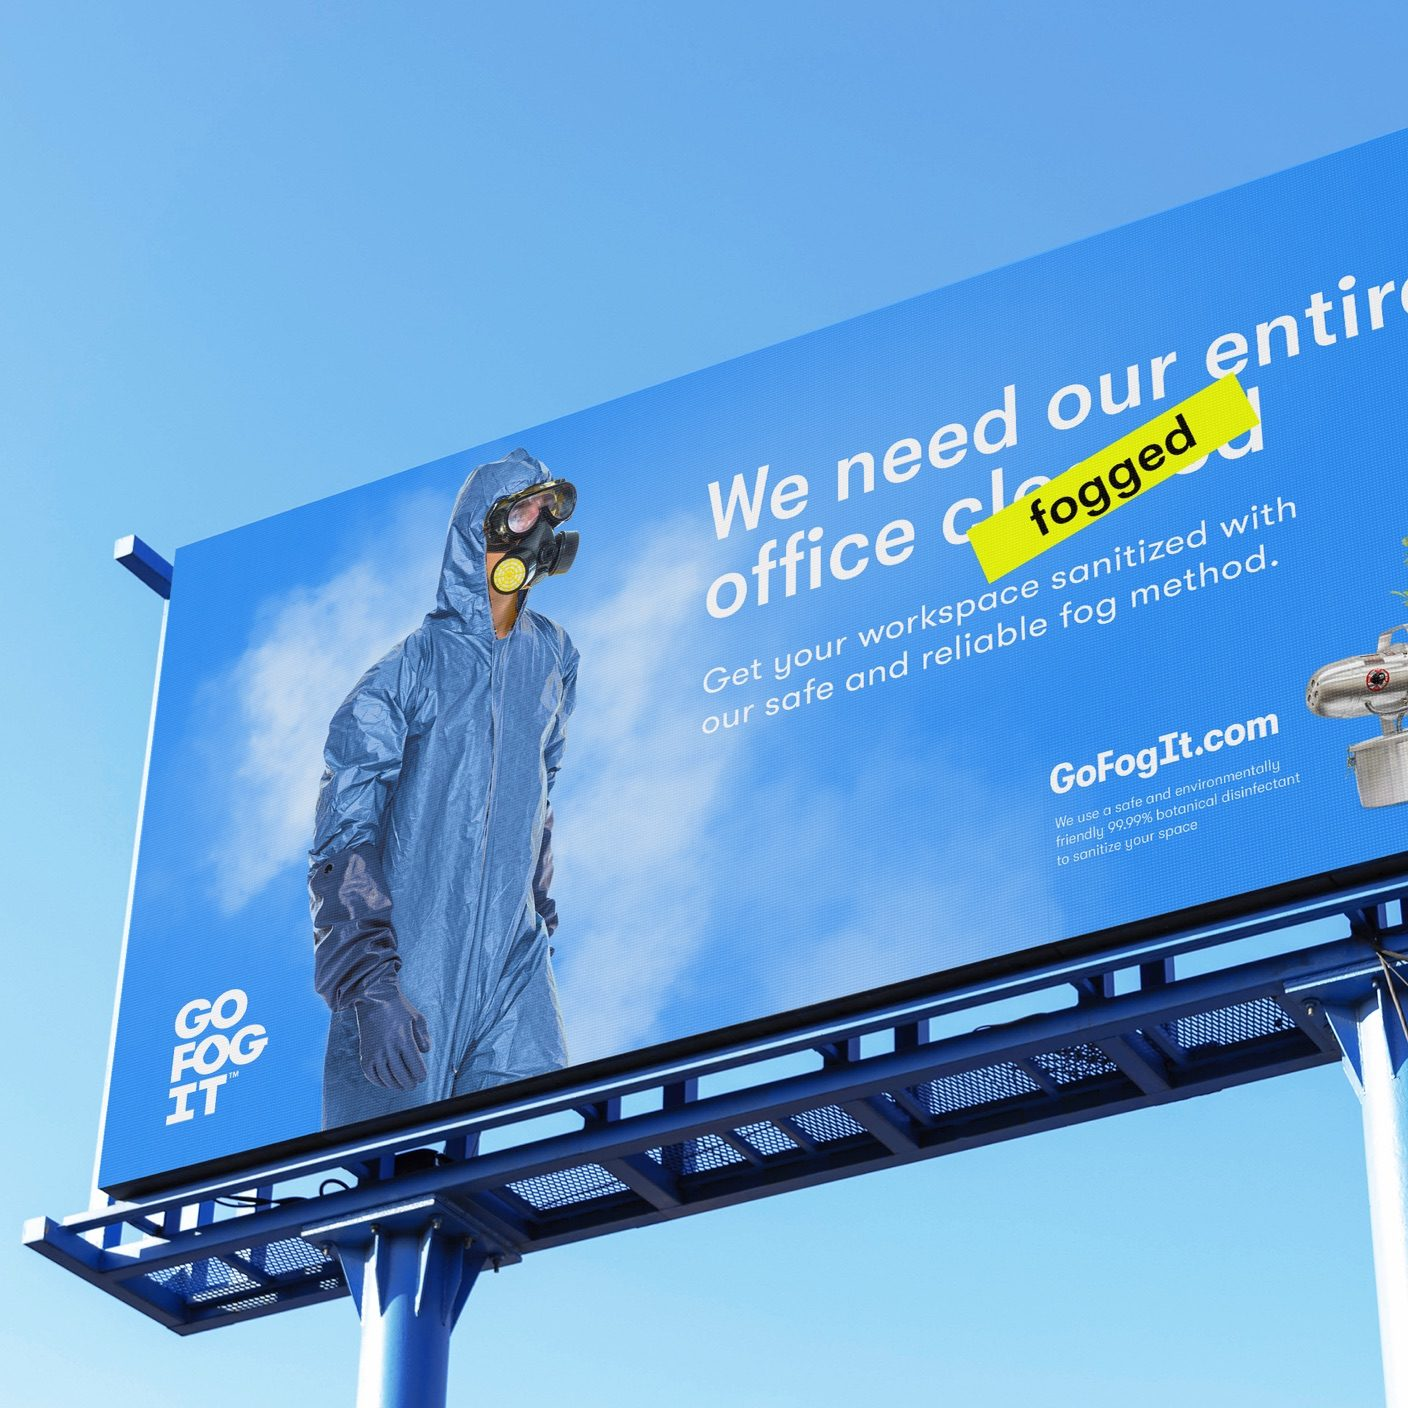 Go Fog It Billboard with a blue sky background, that has a person in a hazmat suit